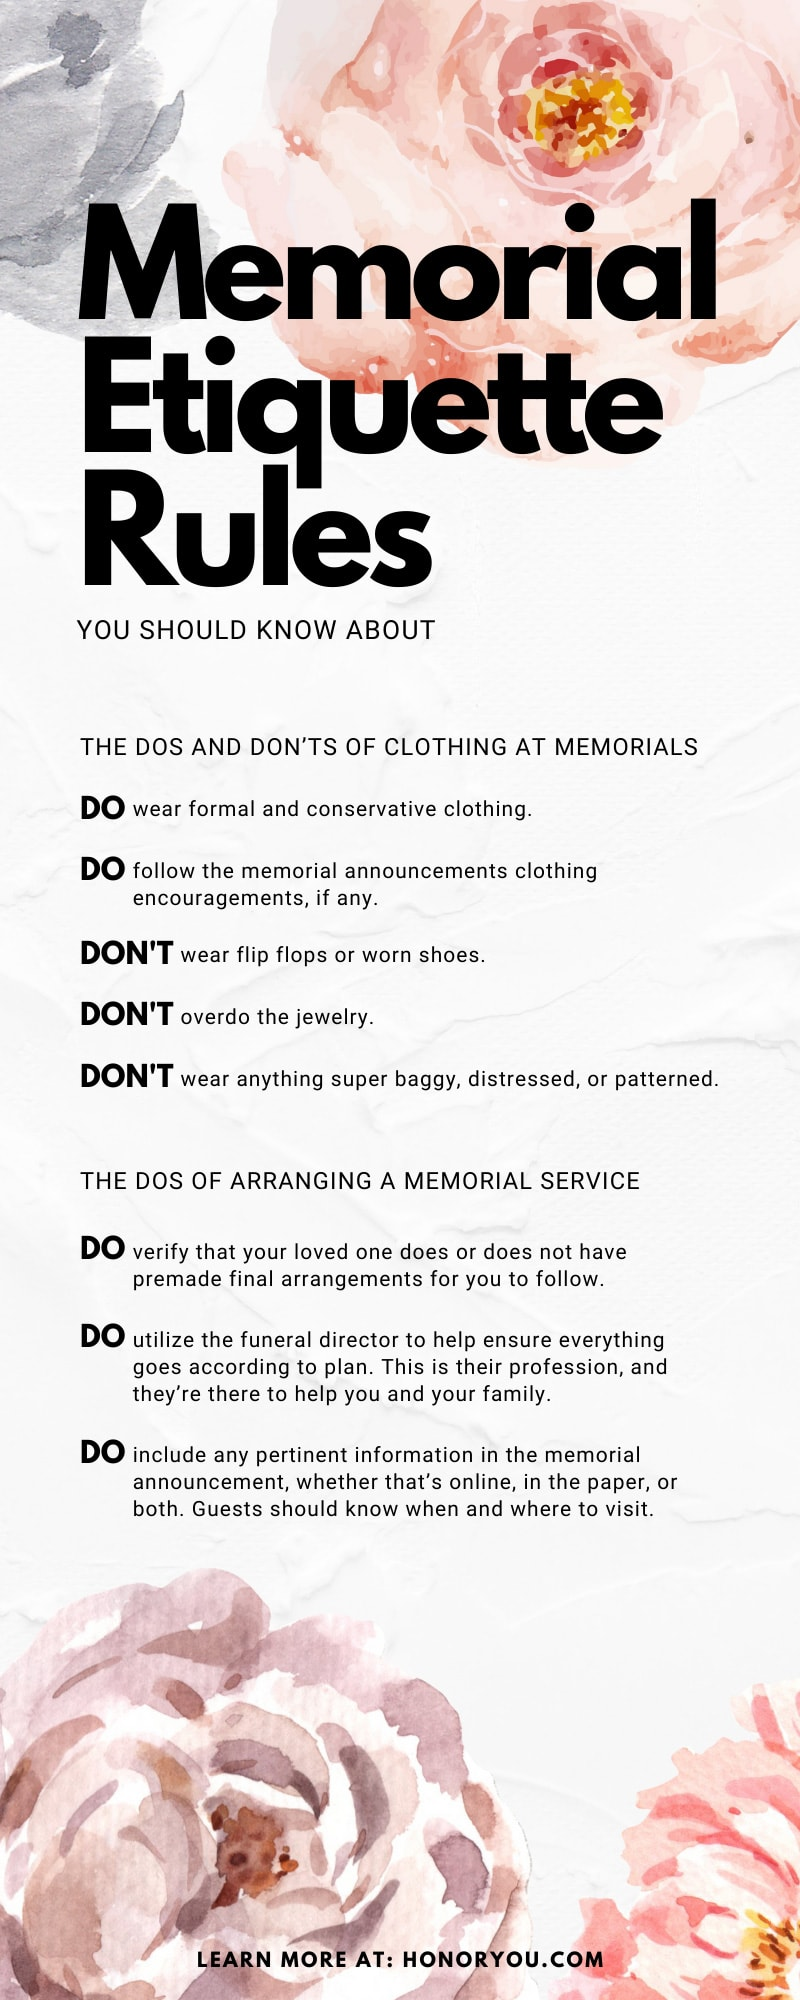 Memorial Etiquette Rules You Should Know About